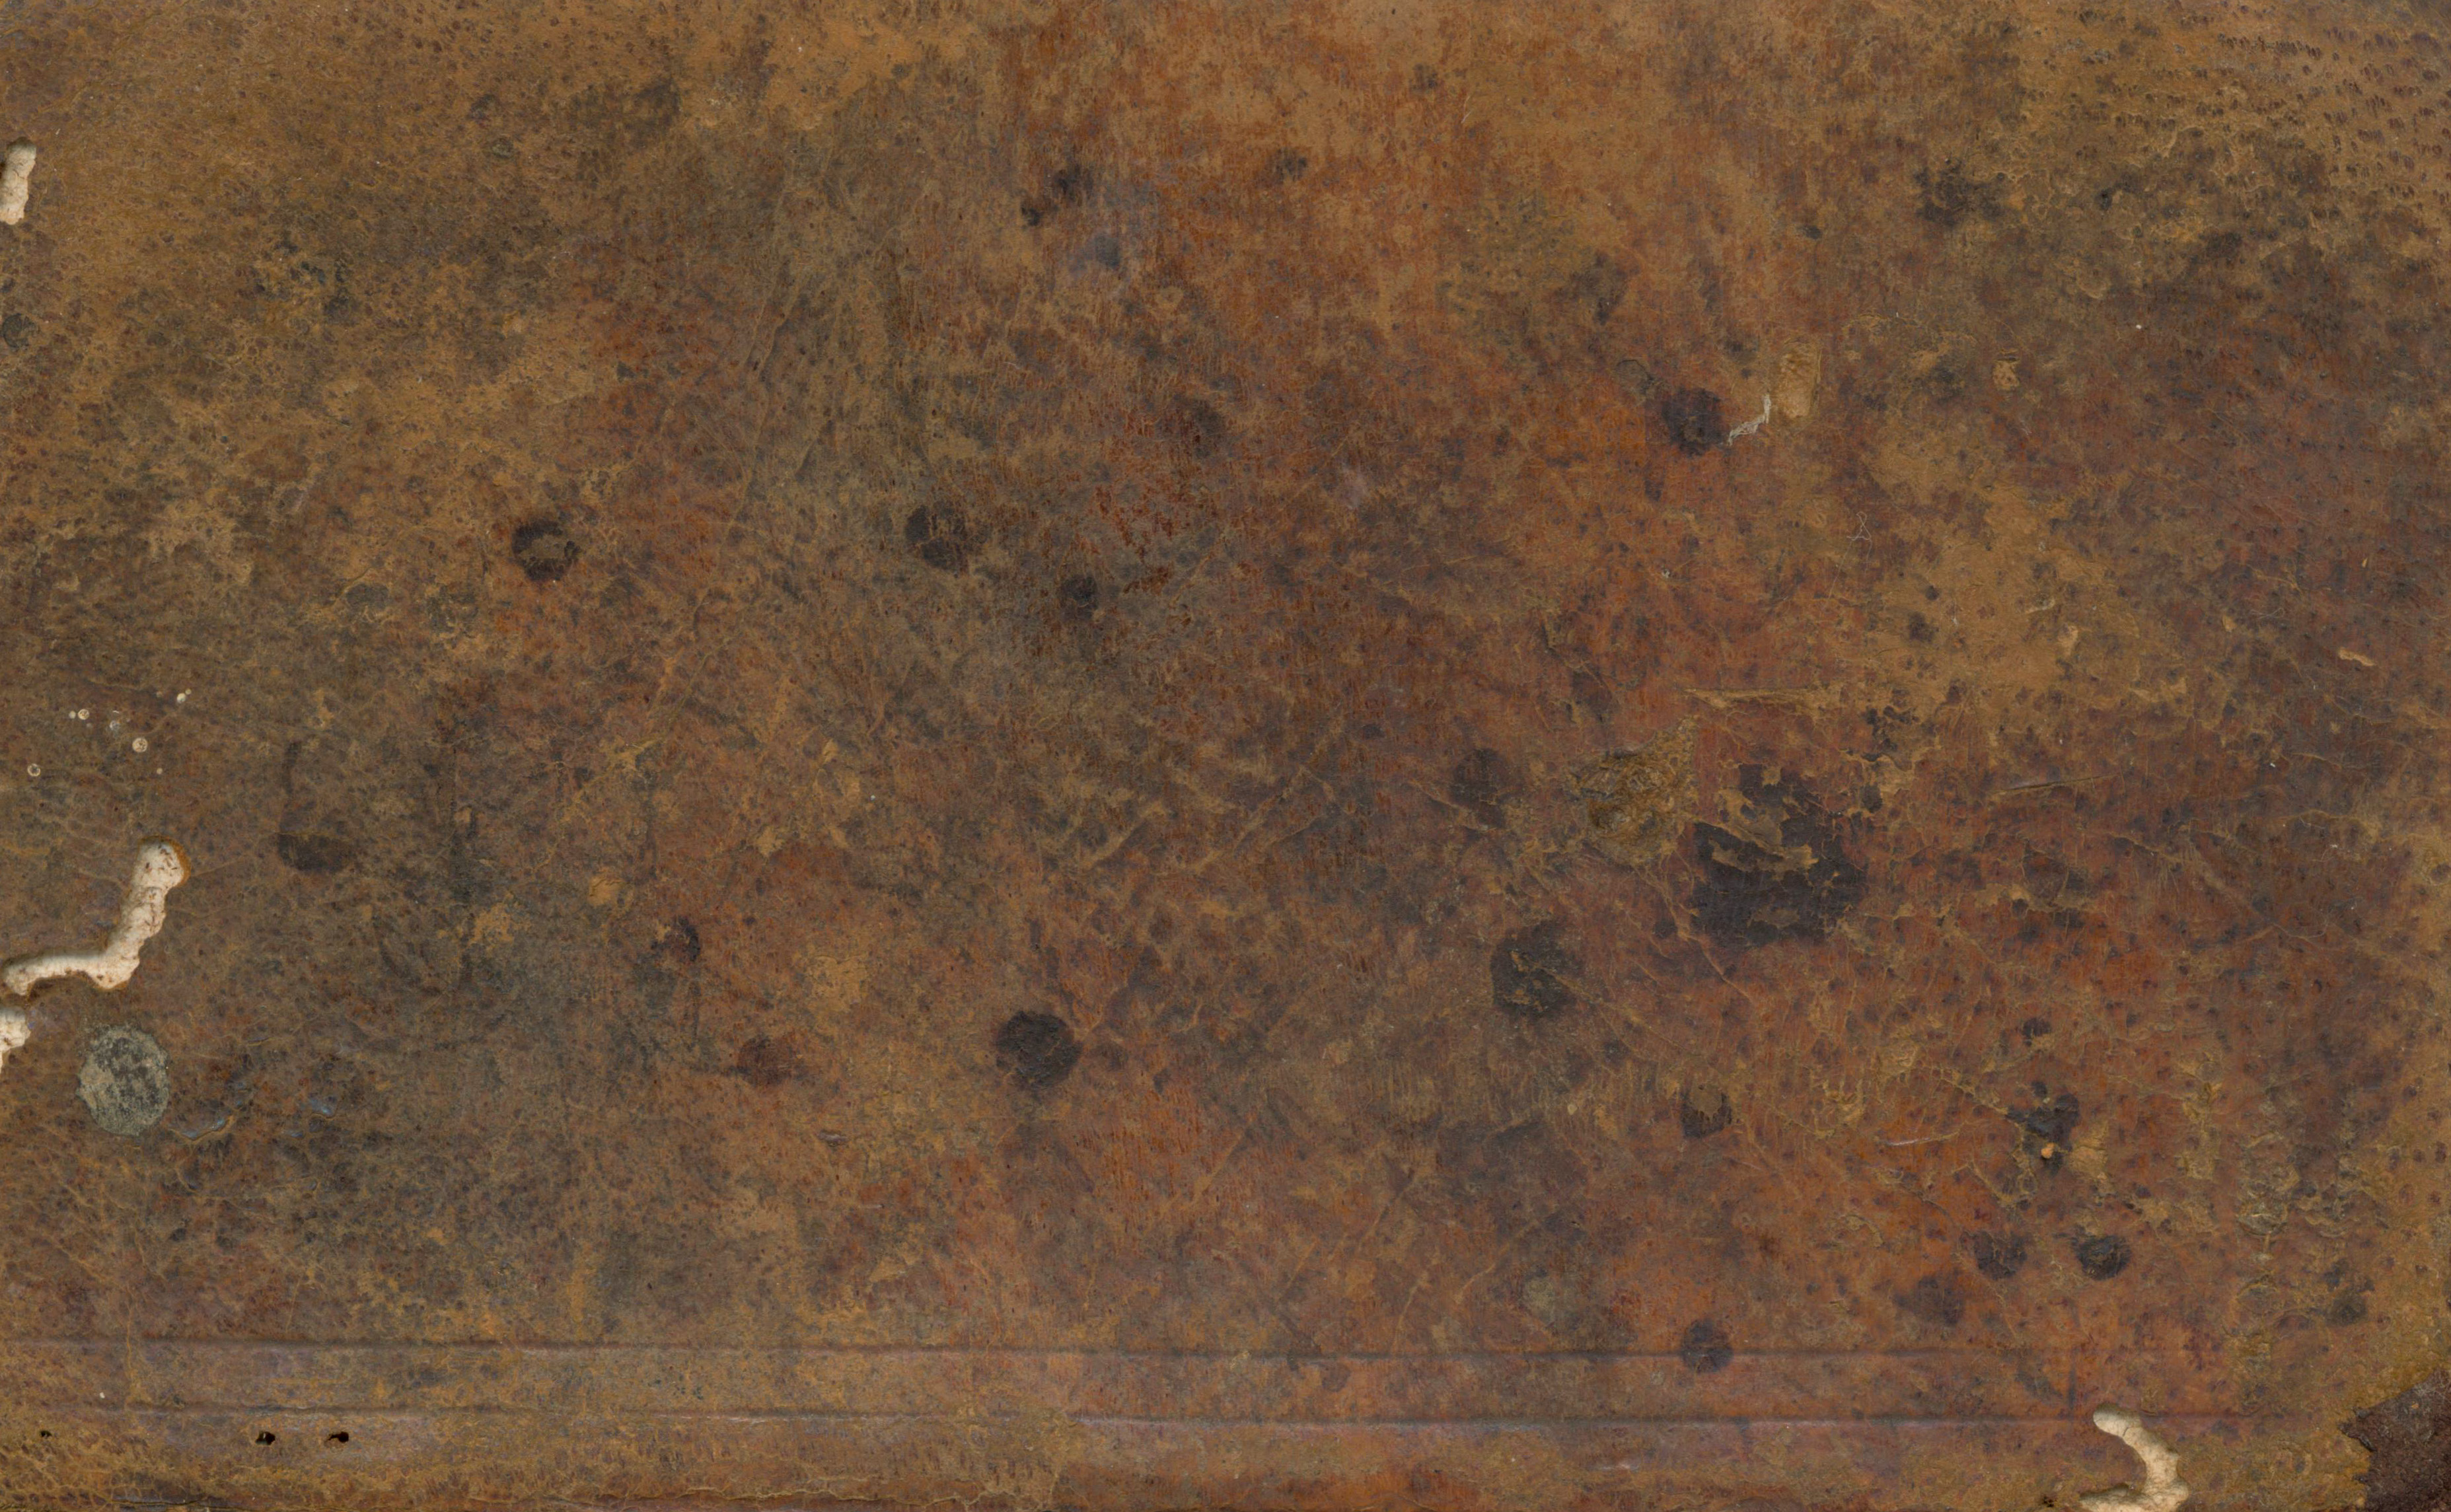 Antique Leather Book Cover Texture : Special vintage book texture textures for photoshop free